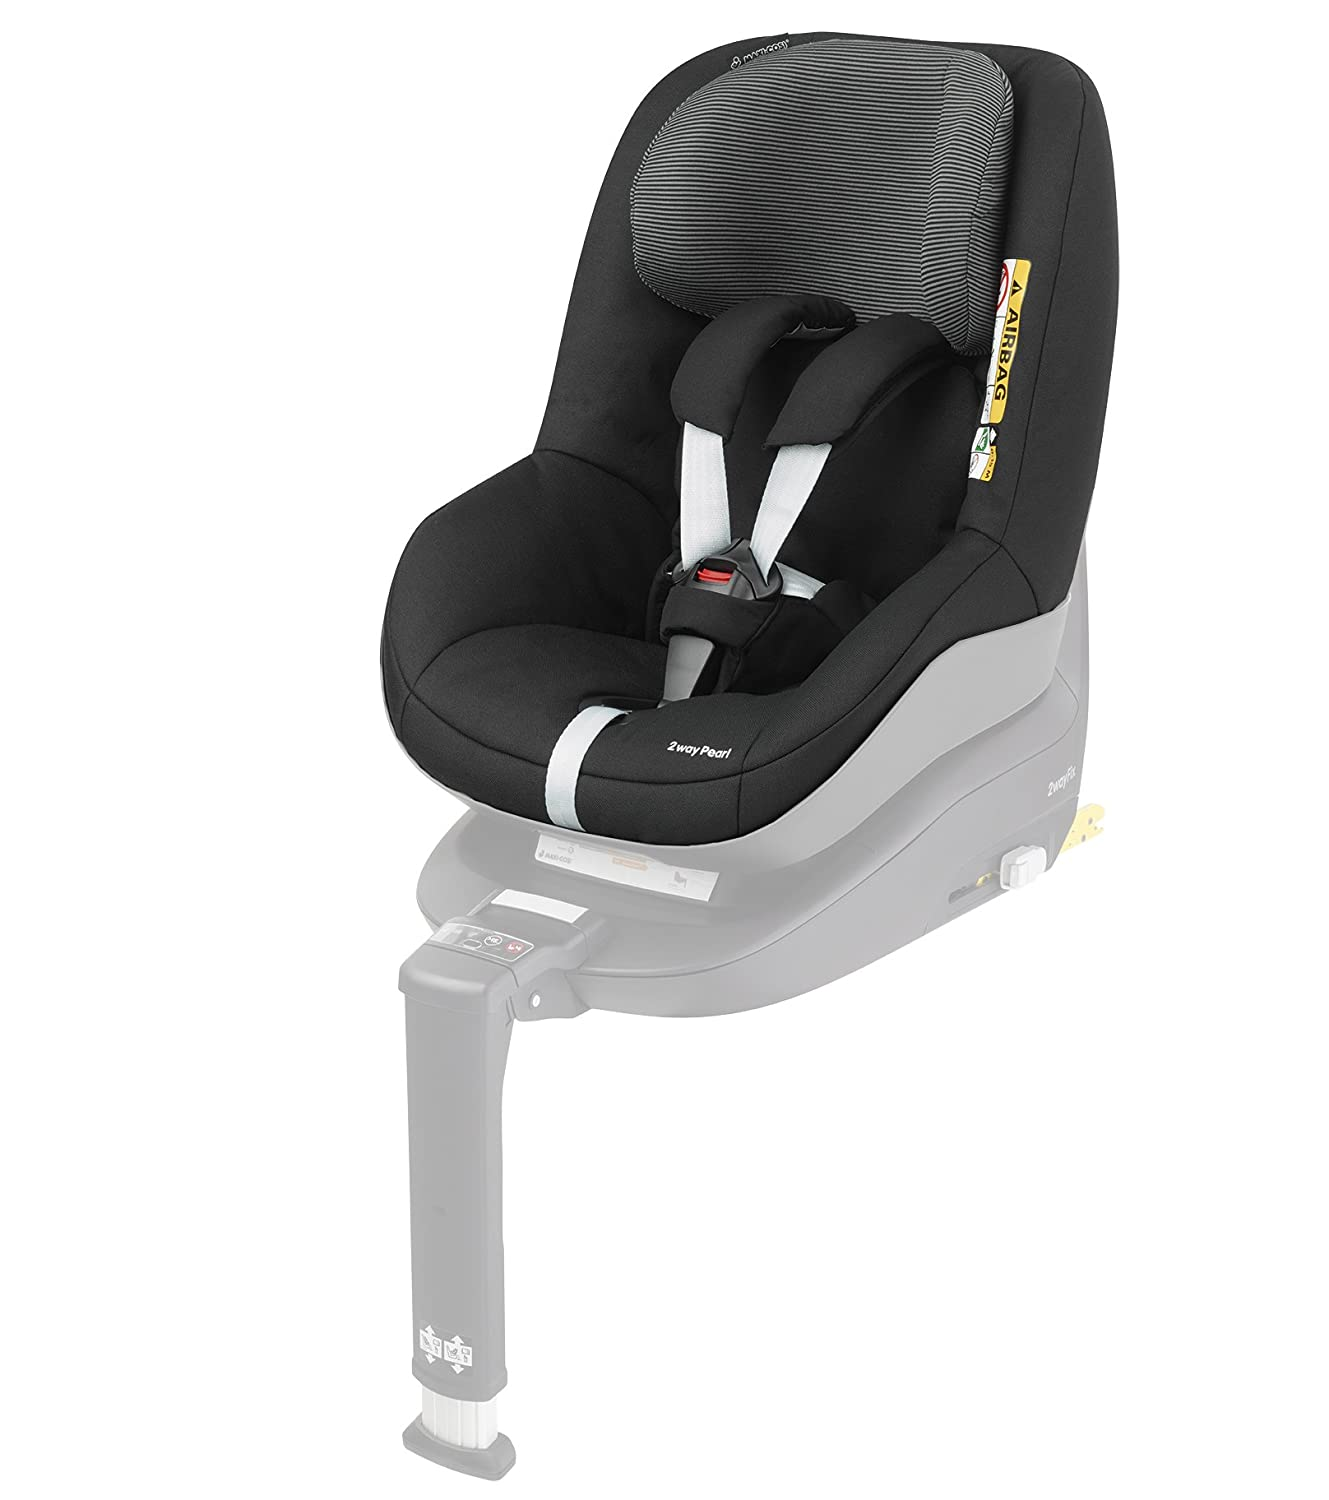 Maxi-Cosi 2wayPearl Seat Cover, Sparkling Grey 97900066